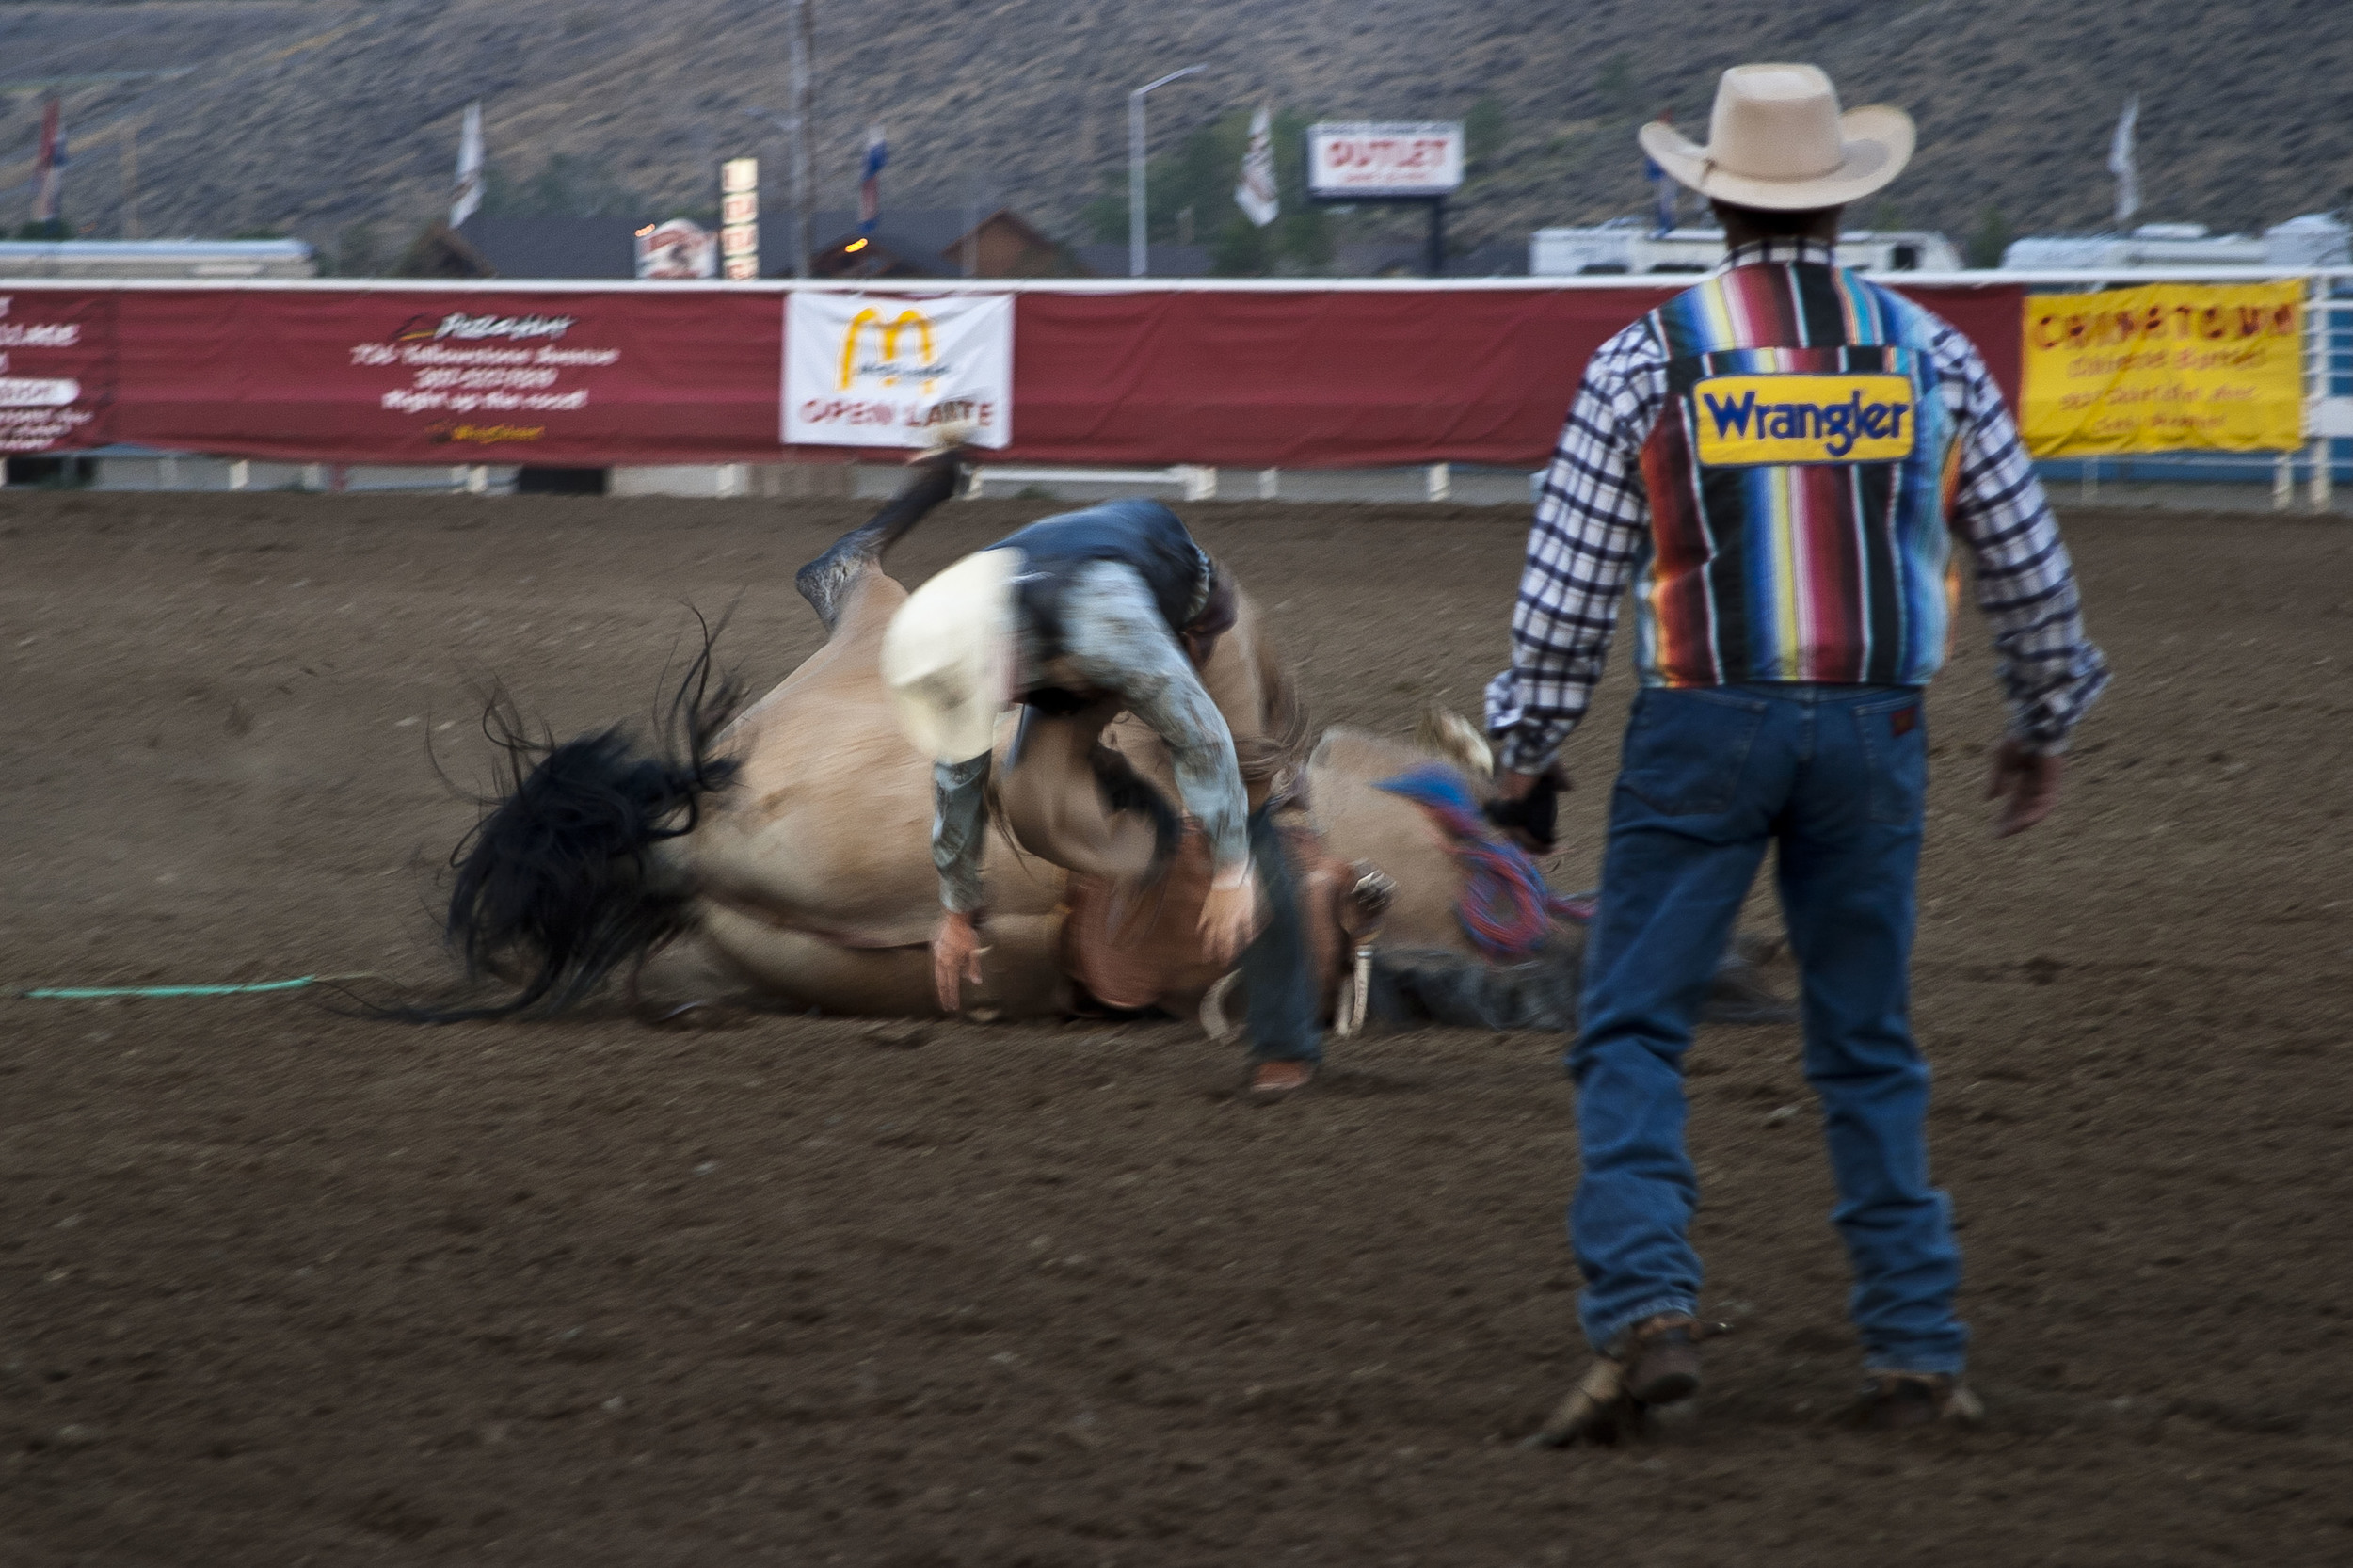 Bucked from a Bronco. Cody, Wyoming.